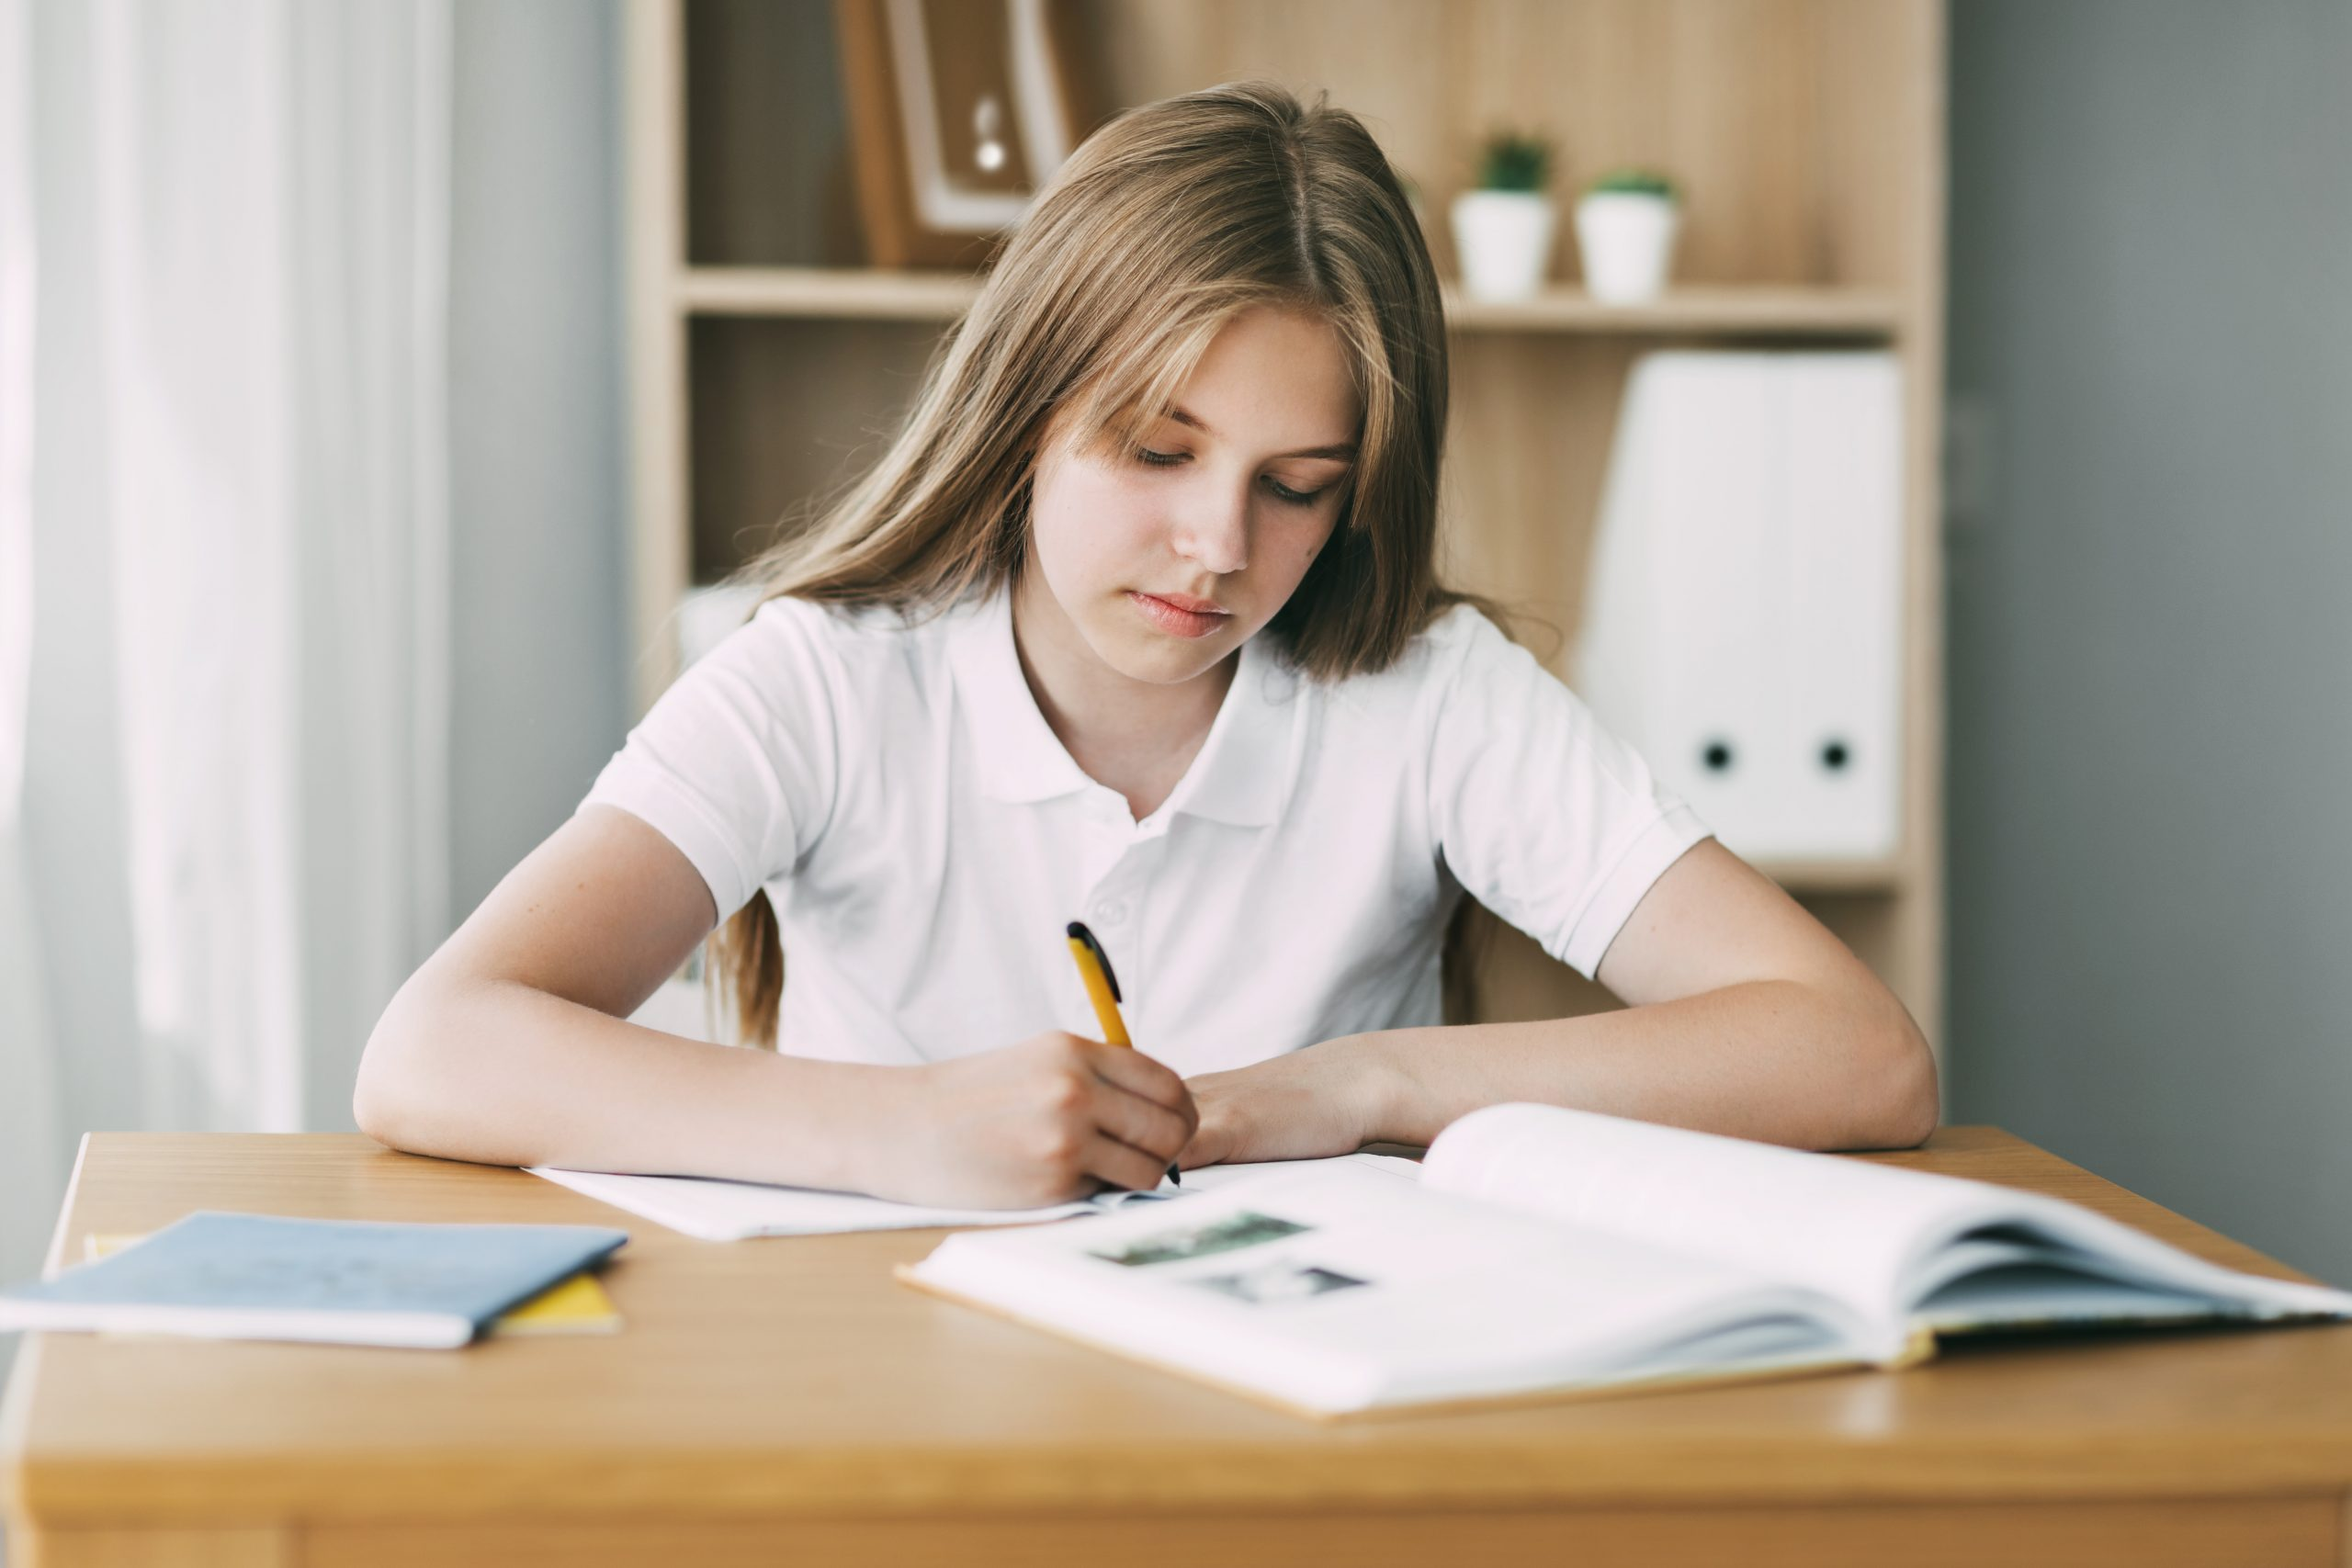 A high school student takes notes from a book, a teenage girl does her homework and prepares for lessons. Education, training, homework.